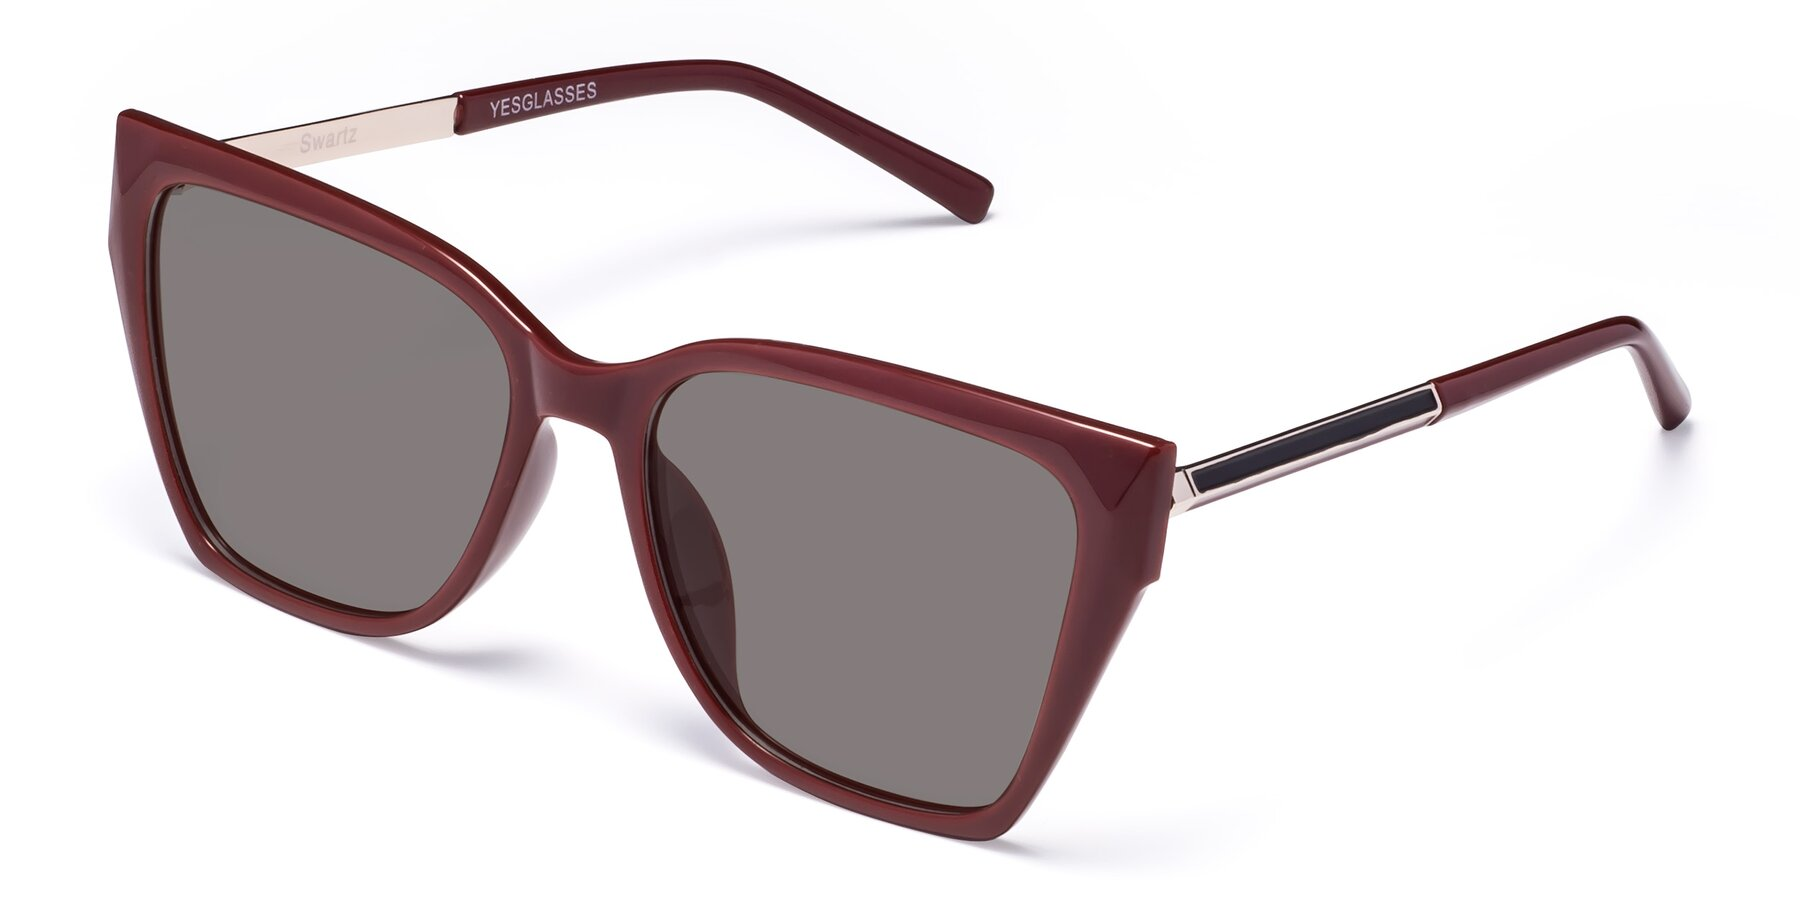 Angle of Swartz in Wine with Medium Gray Tinted Lenses